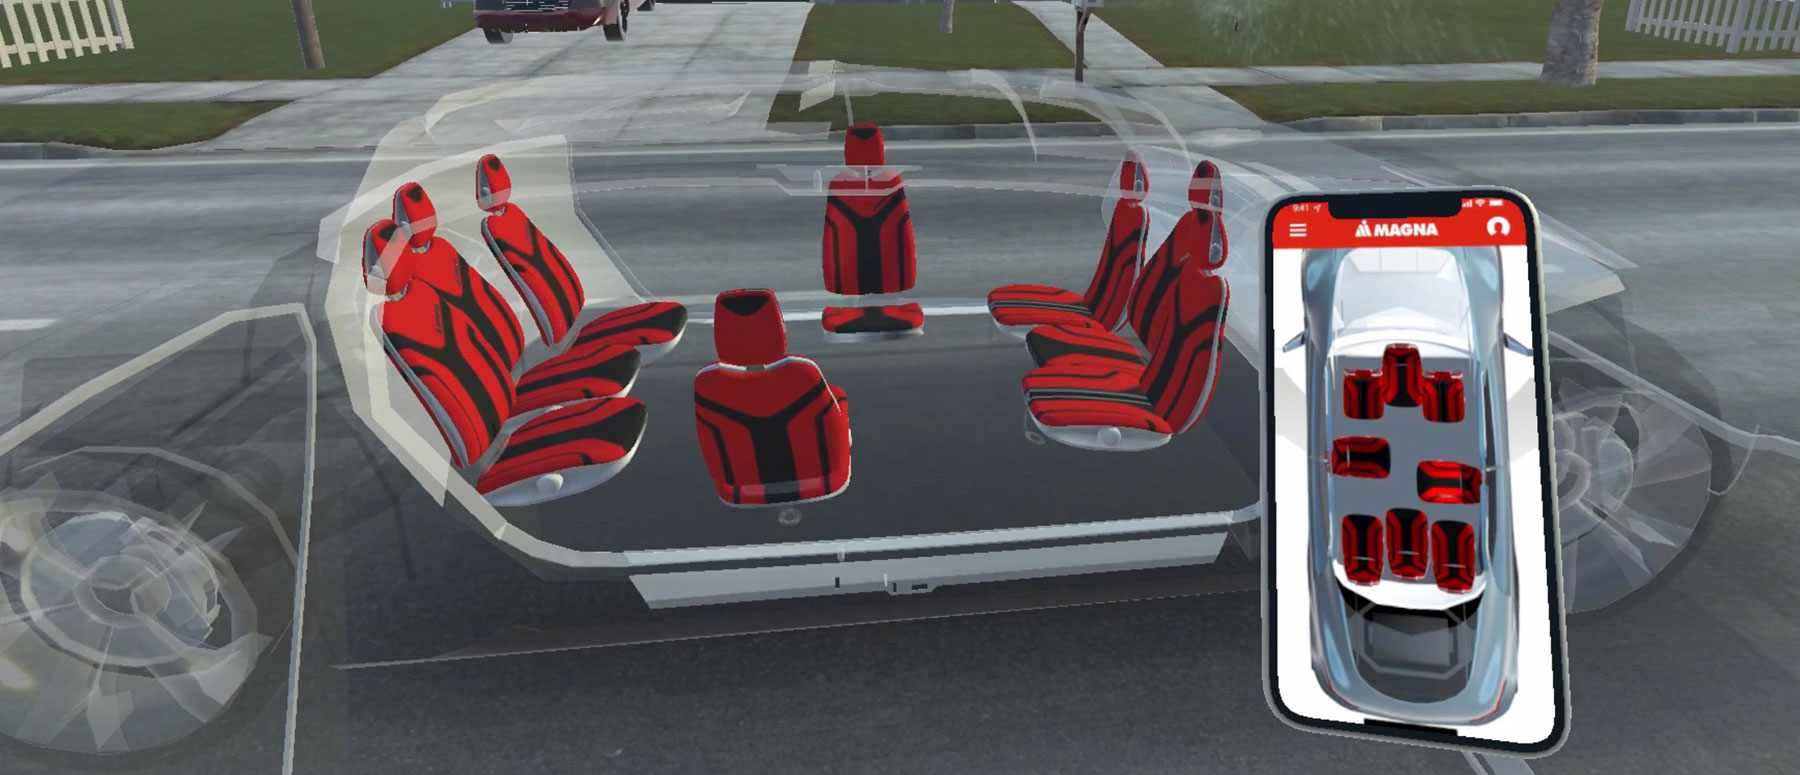 News Release Magna Reveals New Seating Ecosystem Designed